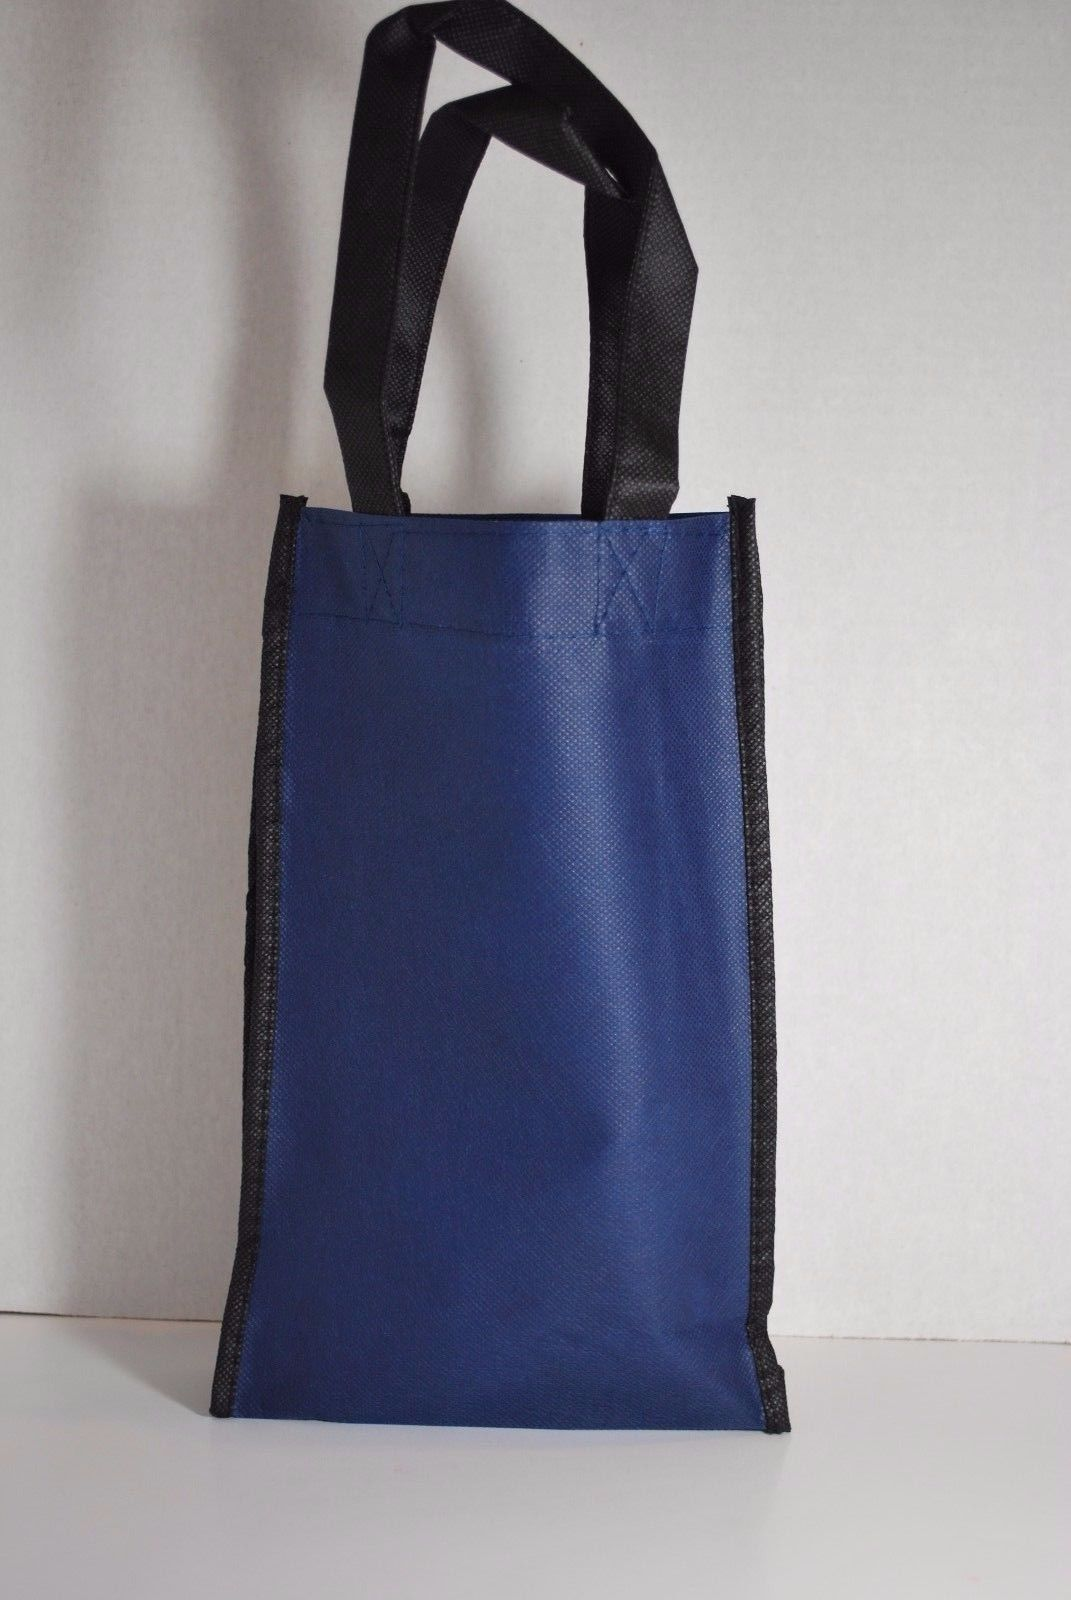 Set of 2 Blue Wine Tote Bags (Wine Bags by) Pearlbedding (each holds 2 Bottles)